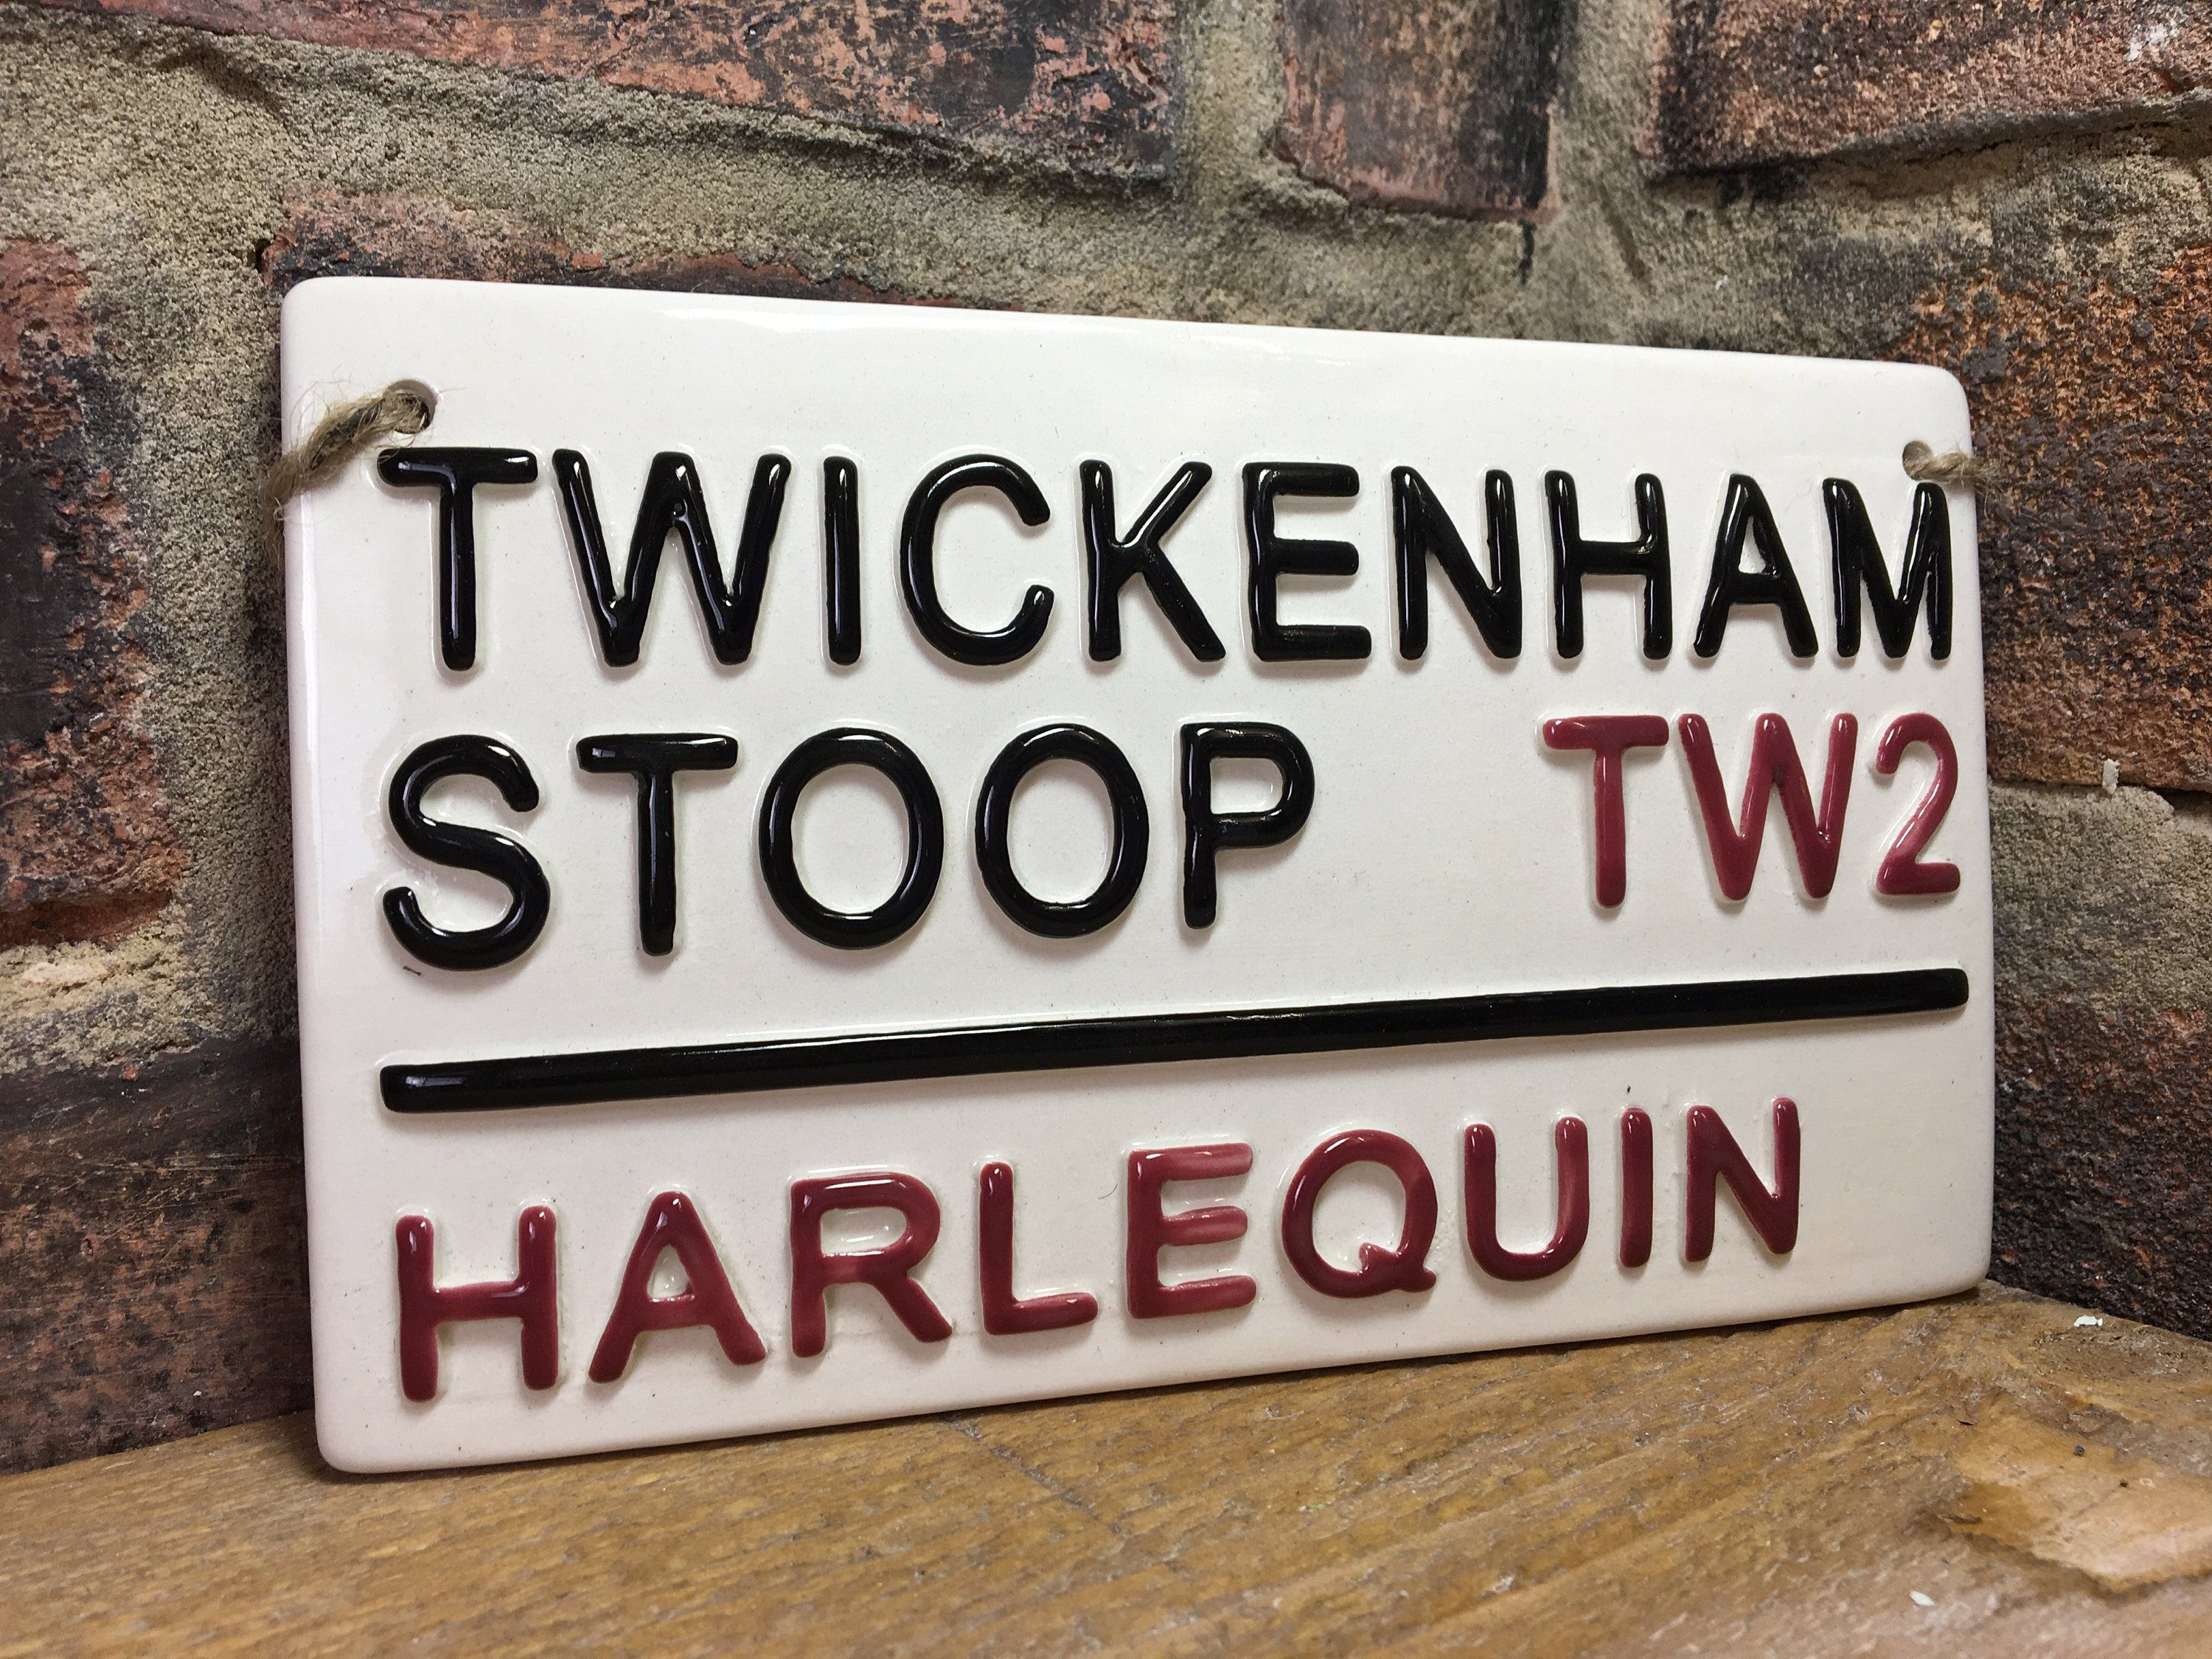 Harlequin Rugby Sign Twickenham Stoop Rugby Street Sign Rugby Gift Rugby Union Sports Plaque Fathers Day Gift England R Rugby Gifts Sports Plaque Football Wall